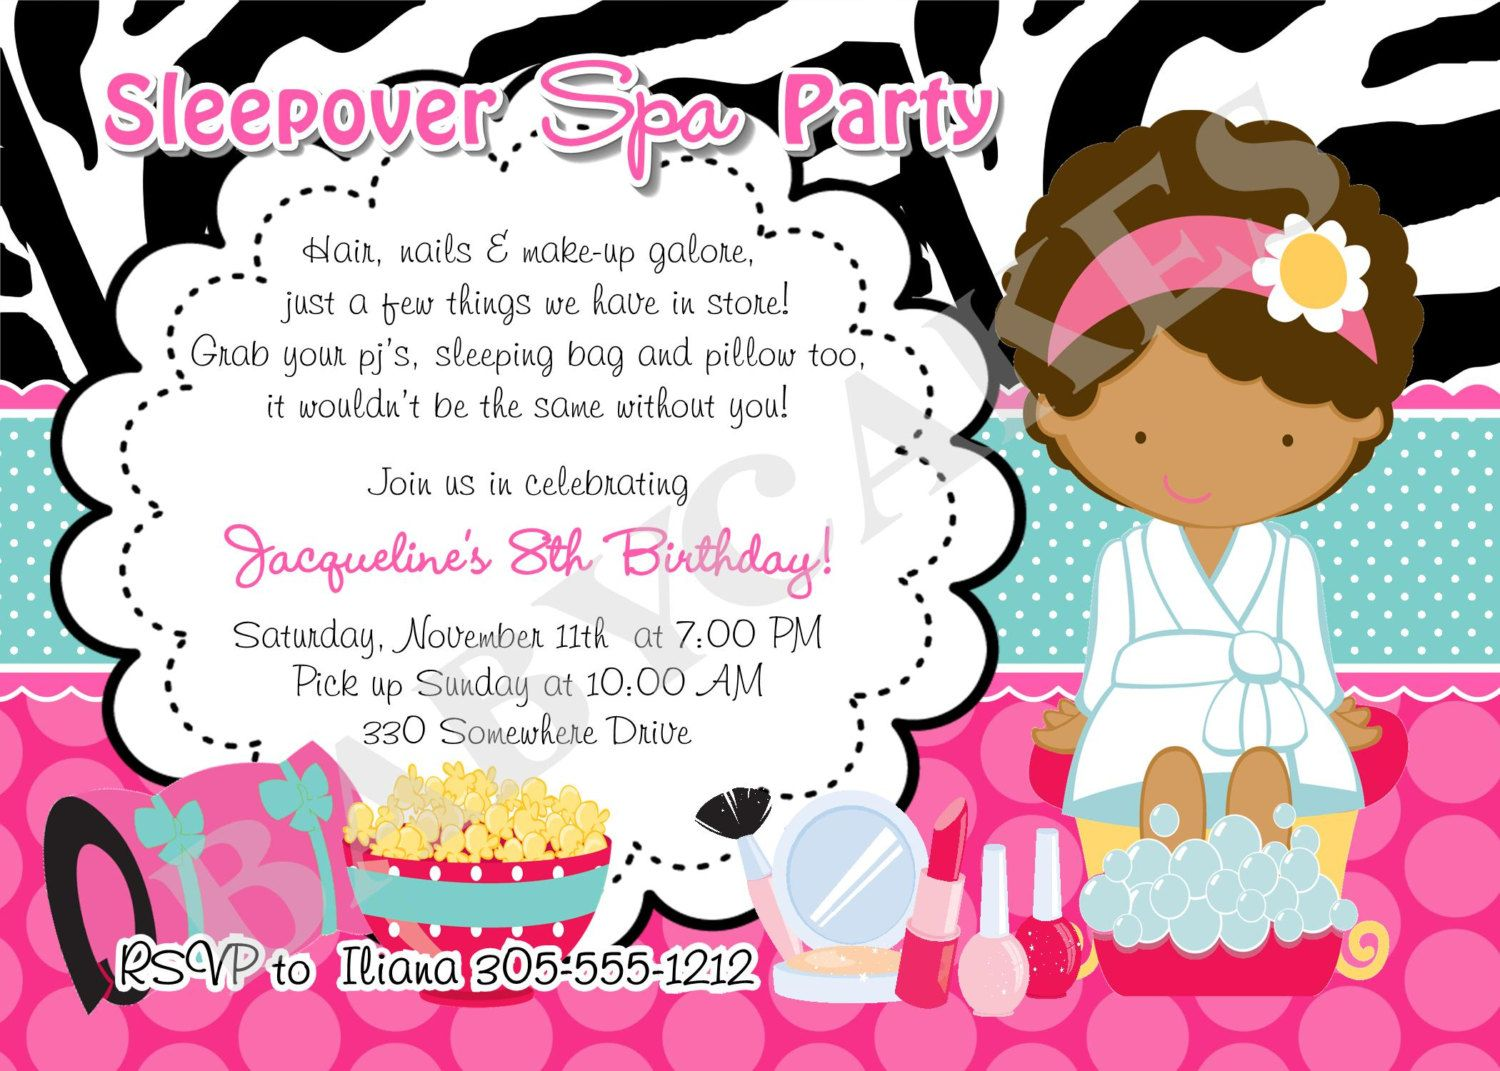 Spa Sleepover Birthday Invitation Invite Sleepover Spa Party